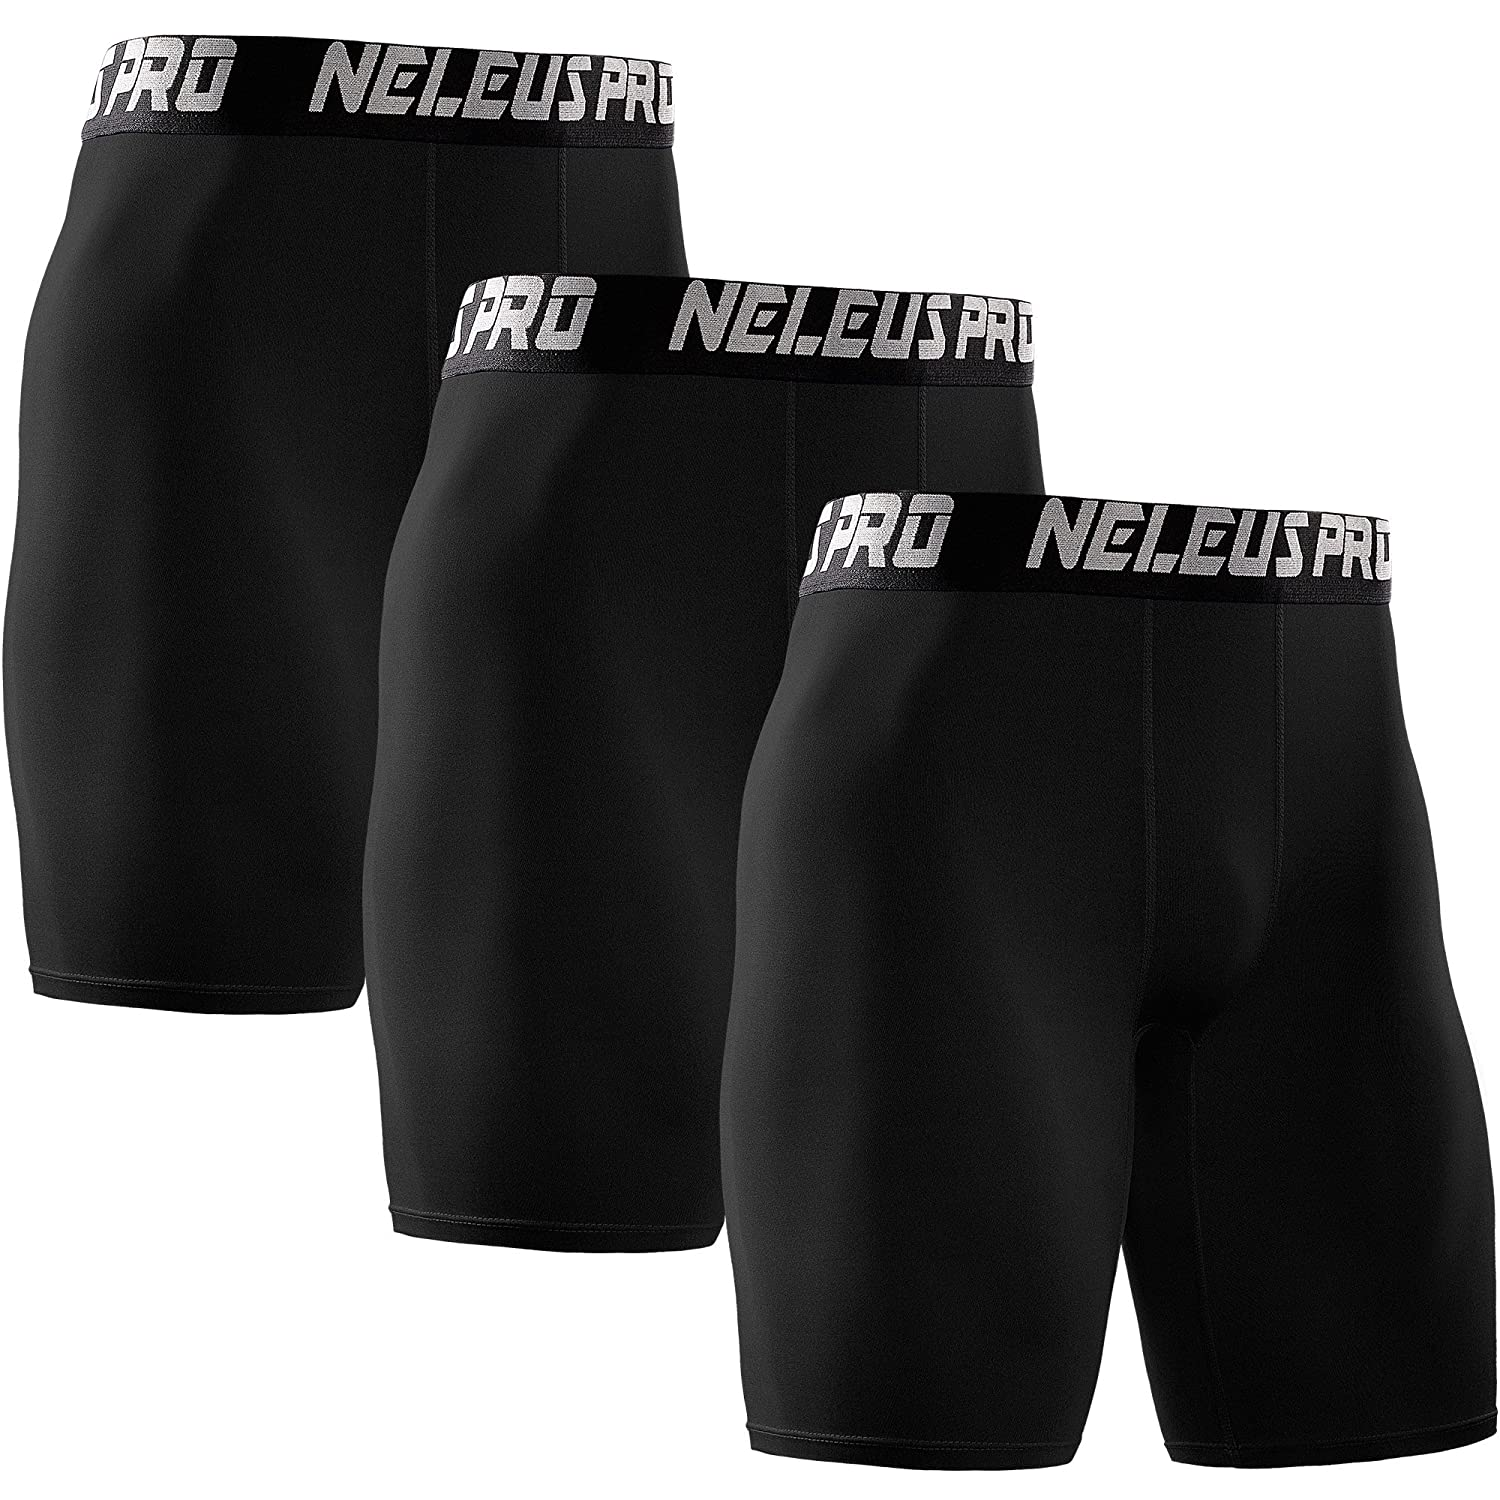 Neleus Men's 3 Pack Athletic Compression Short, 6028, Black, US L, EU XL DK6028BXL#3